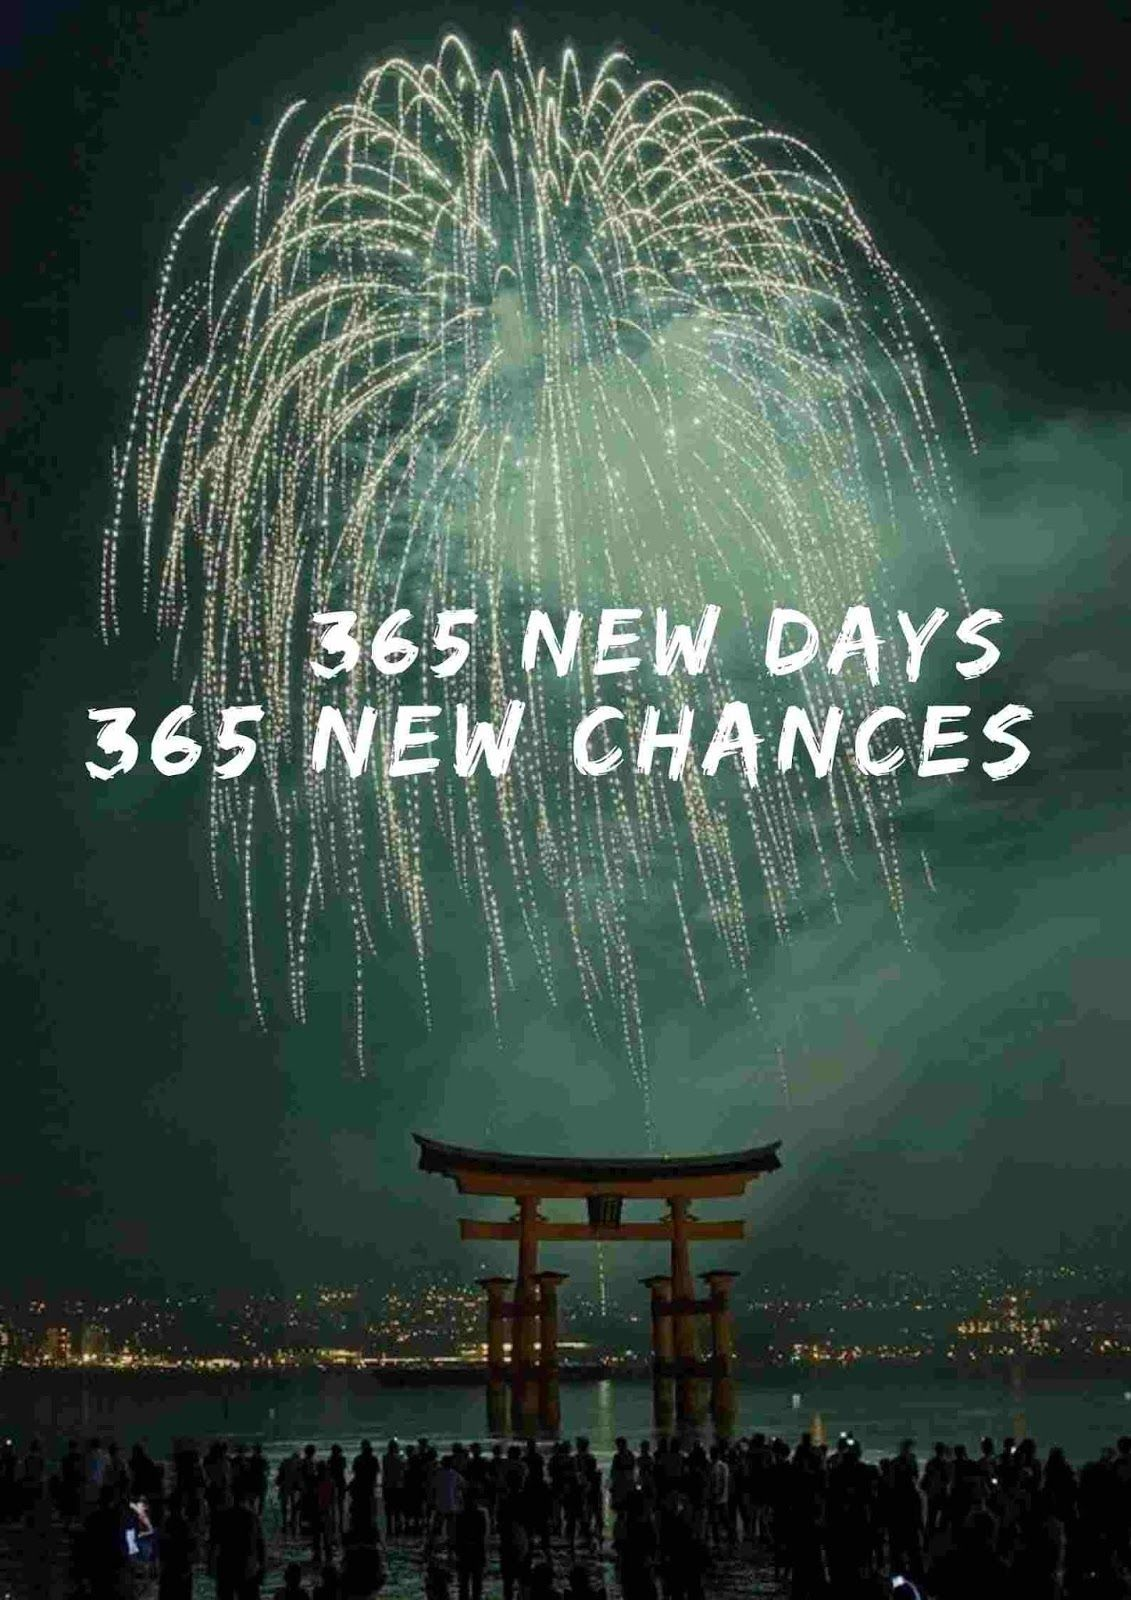 Happy New Year Wallpapers 2020 Free Download Backgrounds Screensavers In 2020 New Year Wallpaper Happy New Year Wallpaper New Year Pictures